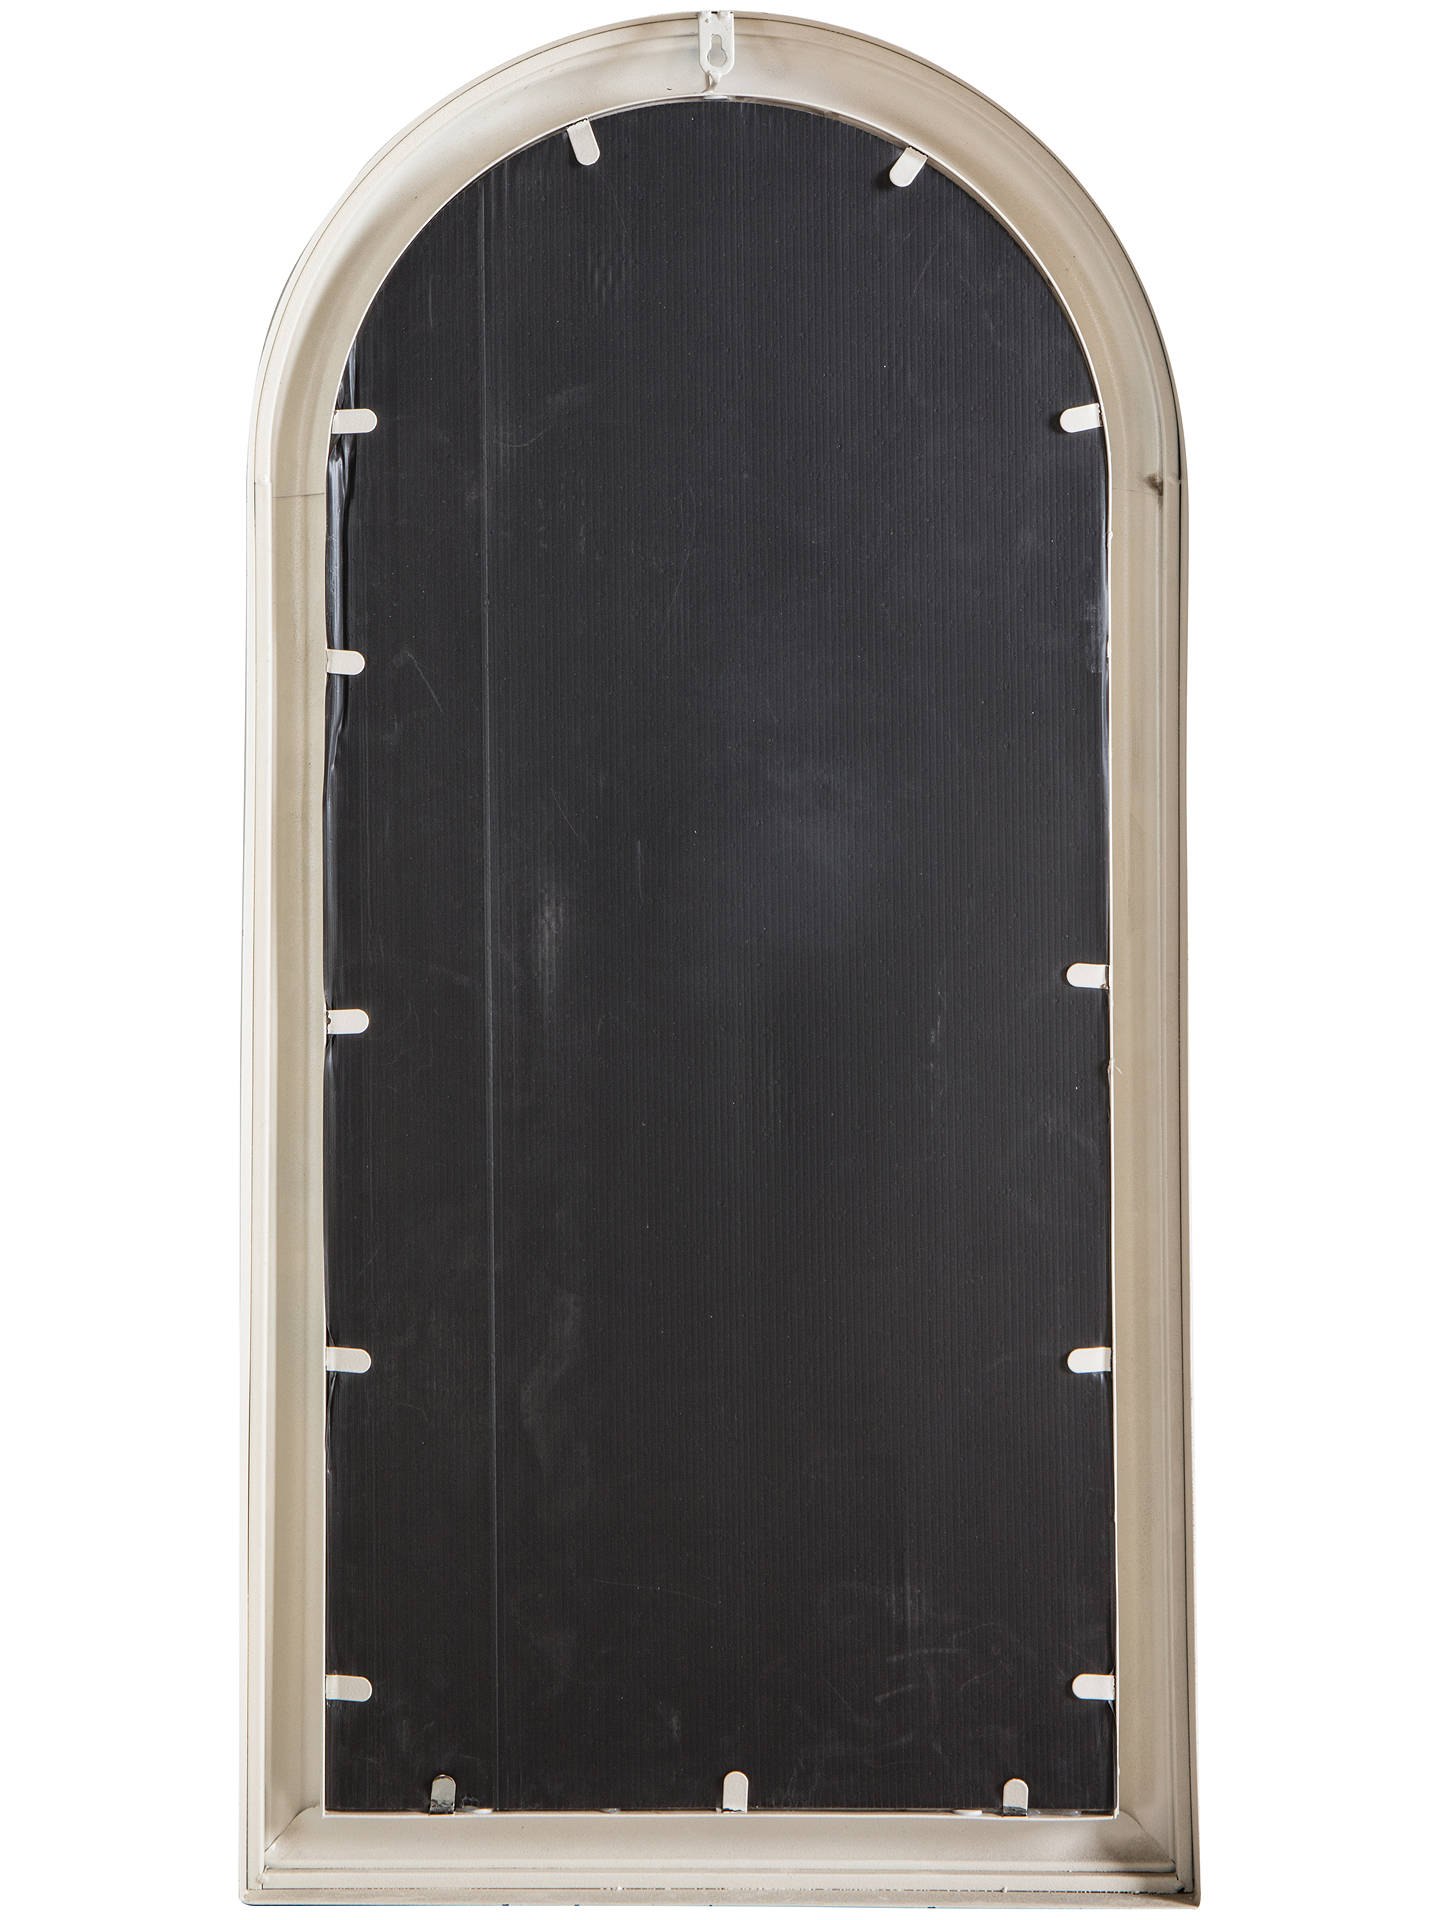 Buy Fleura Outdoor Garden Wall Ornate Arched Mirror, 96.5 x 49cm, Antique Ivory Online at johnlewis.com